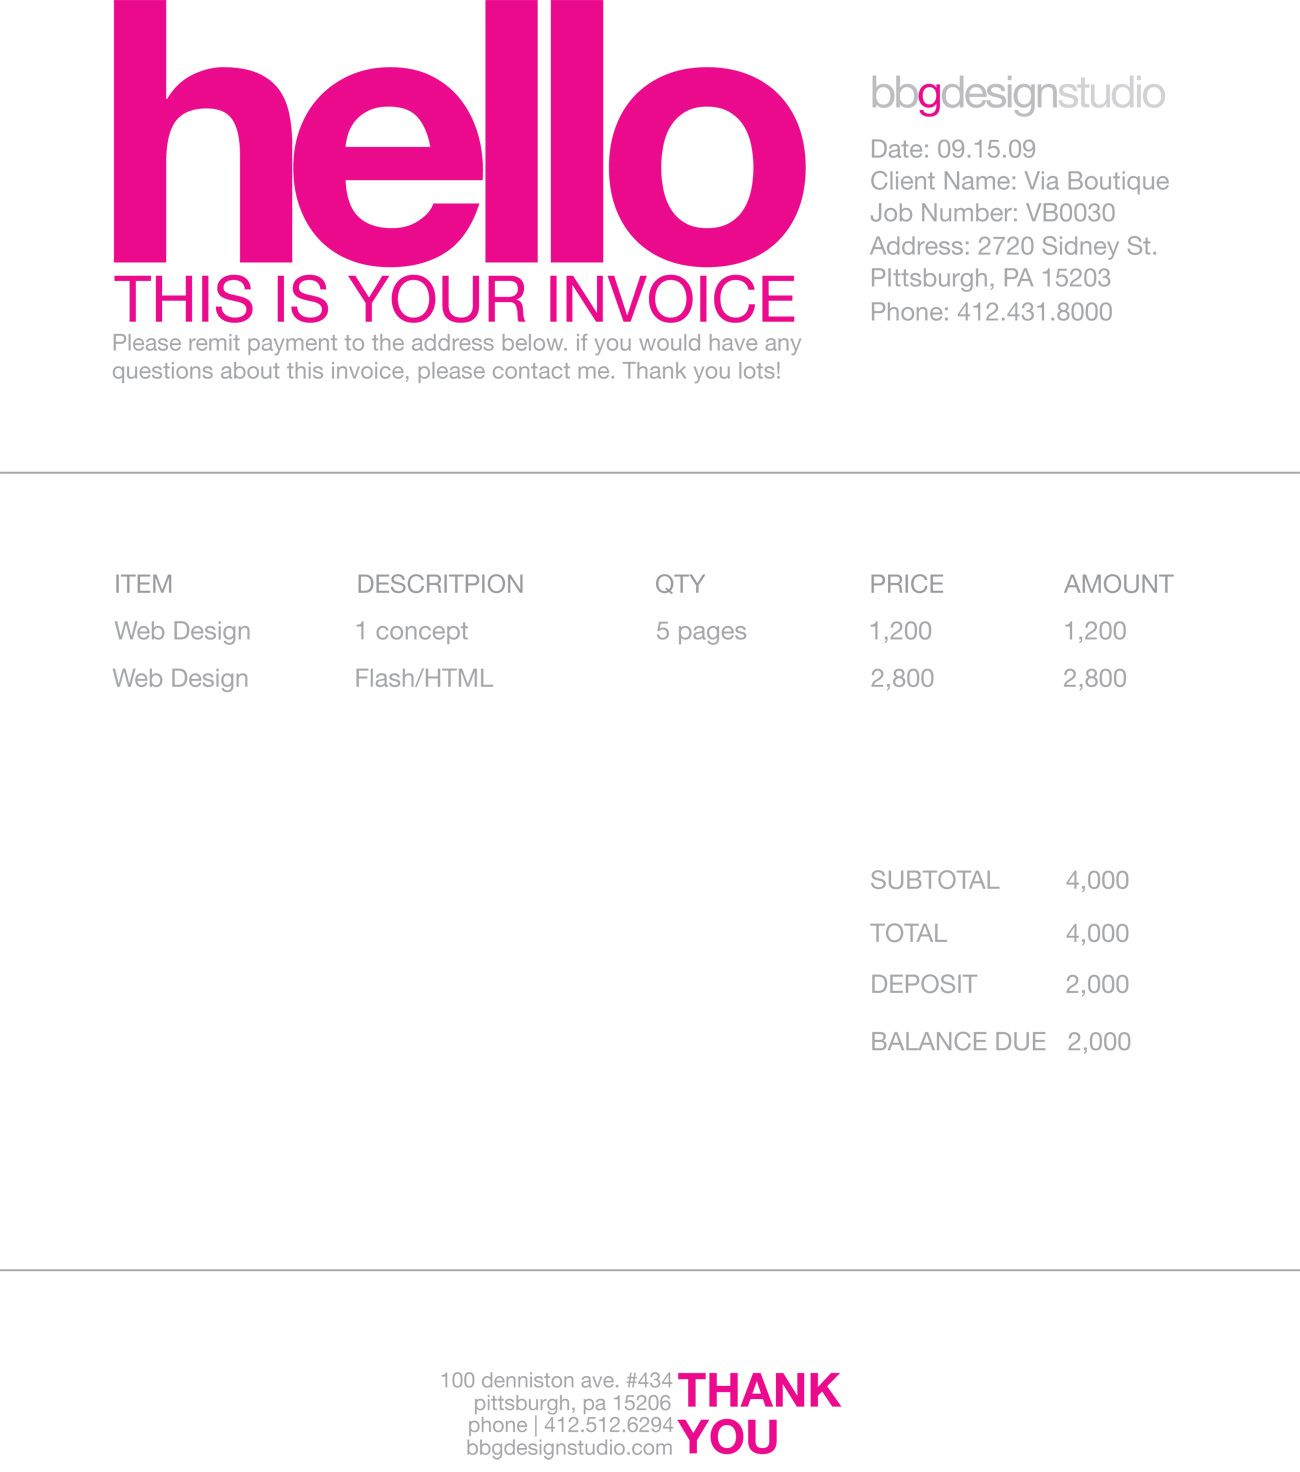 Pxworkoutfreeus  Terrific  Images About Invoice Design On Pinterest With Lovely Fake Invoice Maker Besides Please Find Attached The Invoice Furthermore Blank Invoices Pdf With Nice Ebay Buyer Invoice Also Invoice Approval Software In Addition New Car Invoice Prices  And Microsoft Word Invoice Template Download As Well As Fedex International Invoice Additionally Invoice Tempate From Pinterestcom With Pxworkoutfreeus  Lovely  Images About Invoice Design On Pinterest With Nice Fake Invoice Maker Besides Please Find Attached The Invoice Furthermore Blank Invoices Pdf And Terrific Ebay Buyer Invoice Also Invoice Approval Software In Addition New Car Invoice Prices  From Pinterestcom